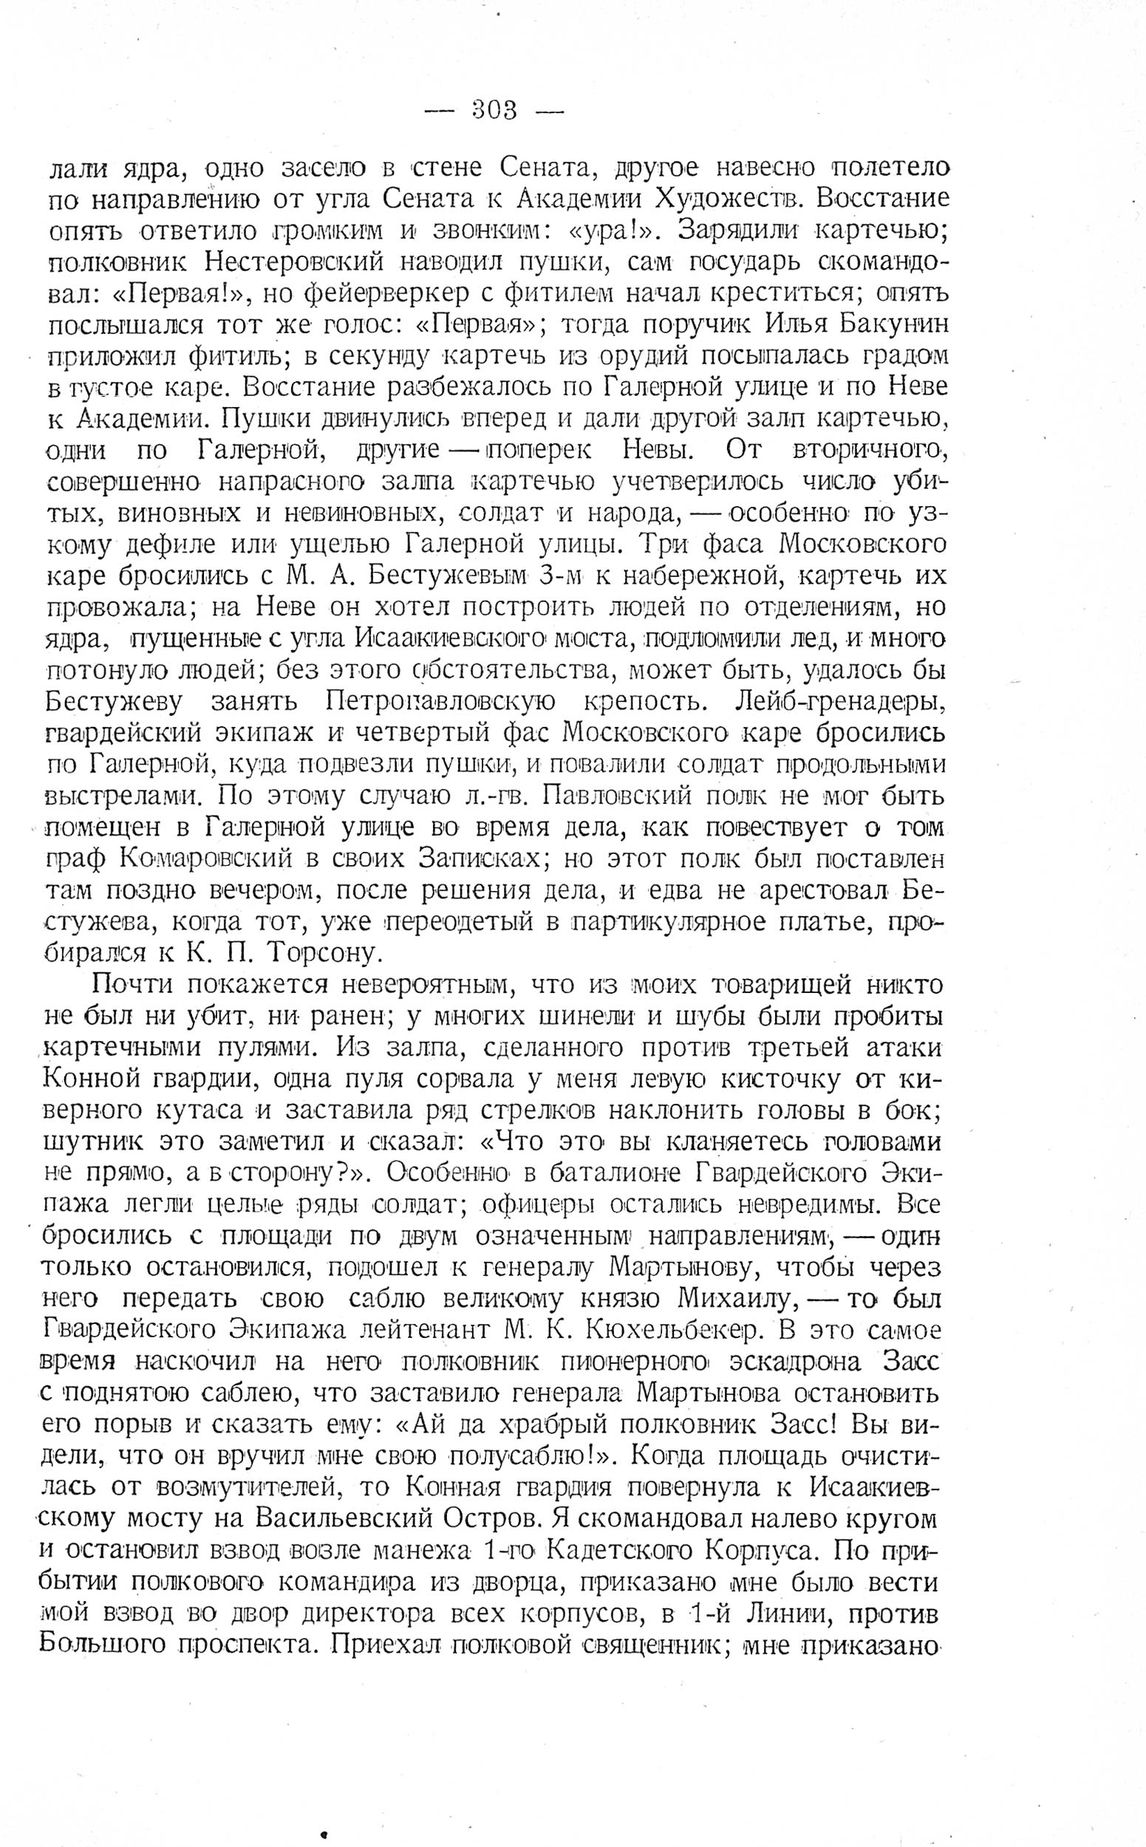 http://elib.shpl.ru/pages/625886/zooms/7